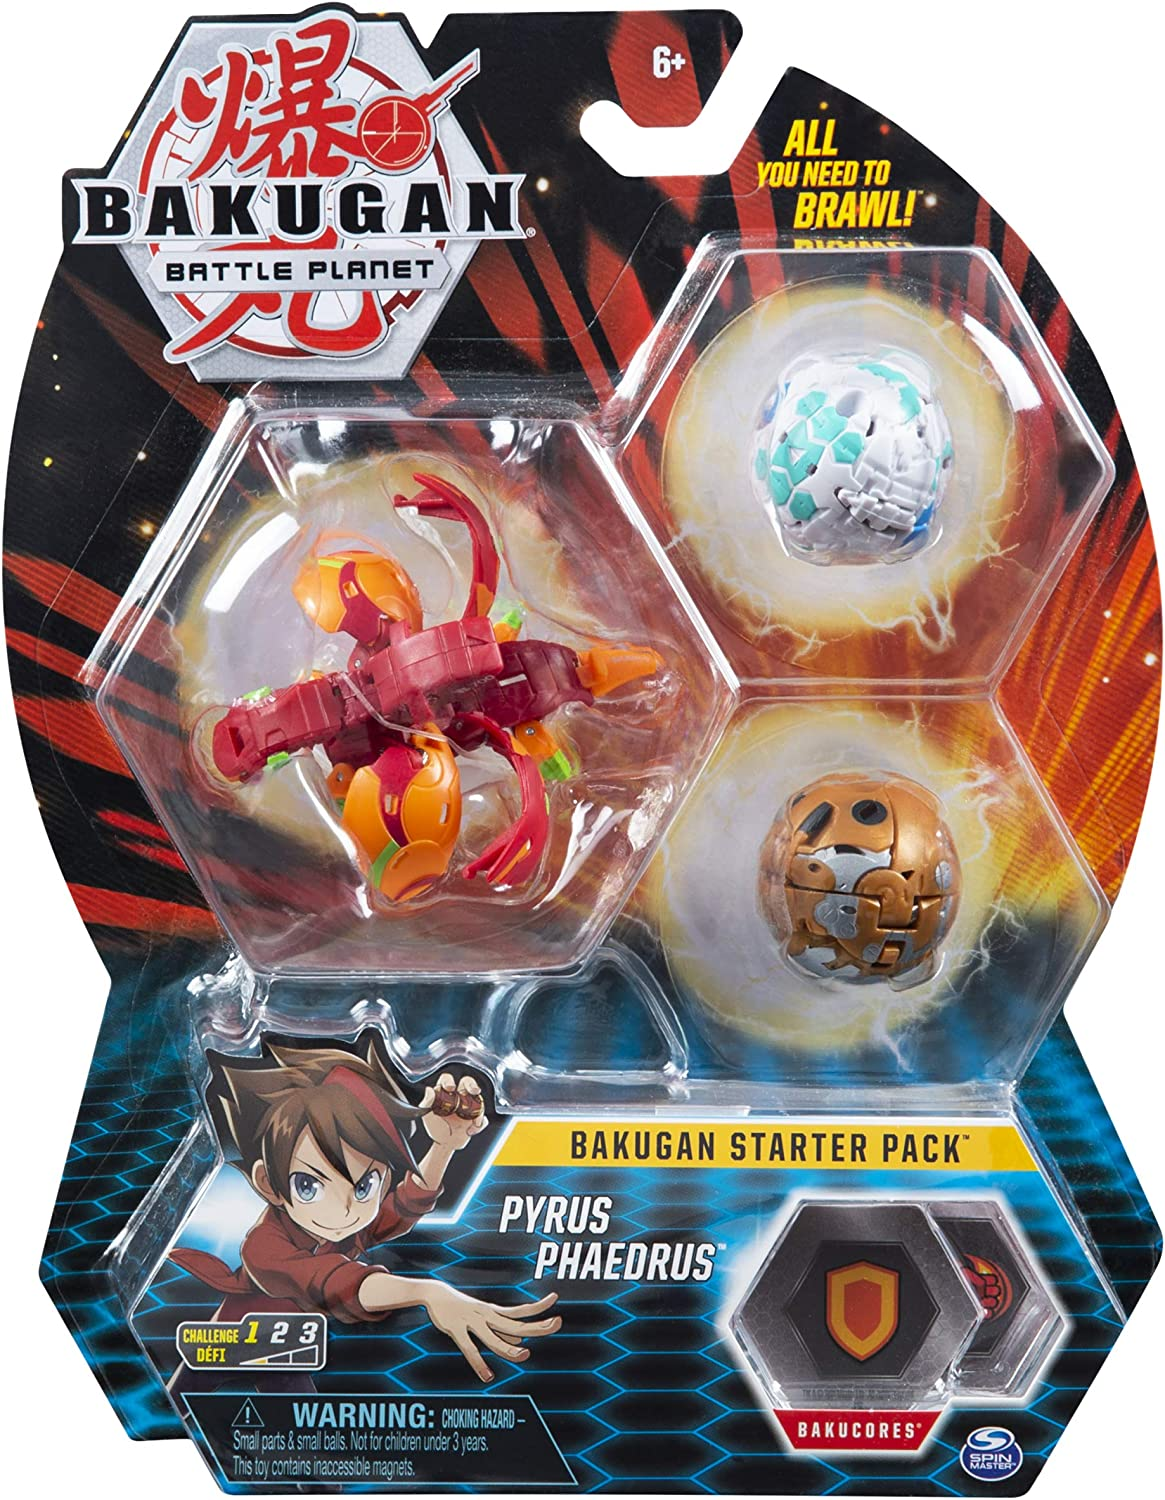 BAKUGAN Starter Pack Set Assortment (Styles May Vary-One Supplied) Surtido de Paquetes de iniciación (Estilos Pueden Variar, uno Incluido), Color Multicolor. (Spin Master Toys Ltd 6045144)